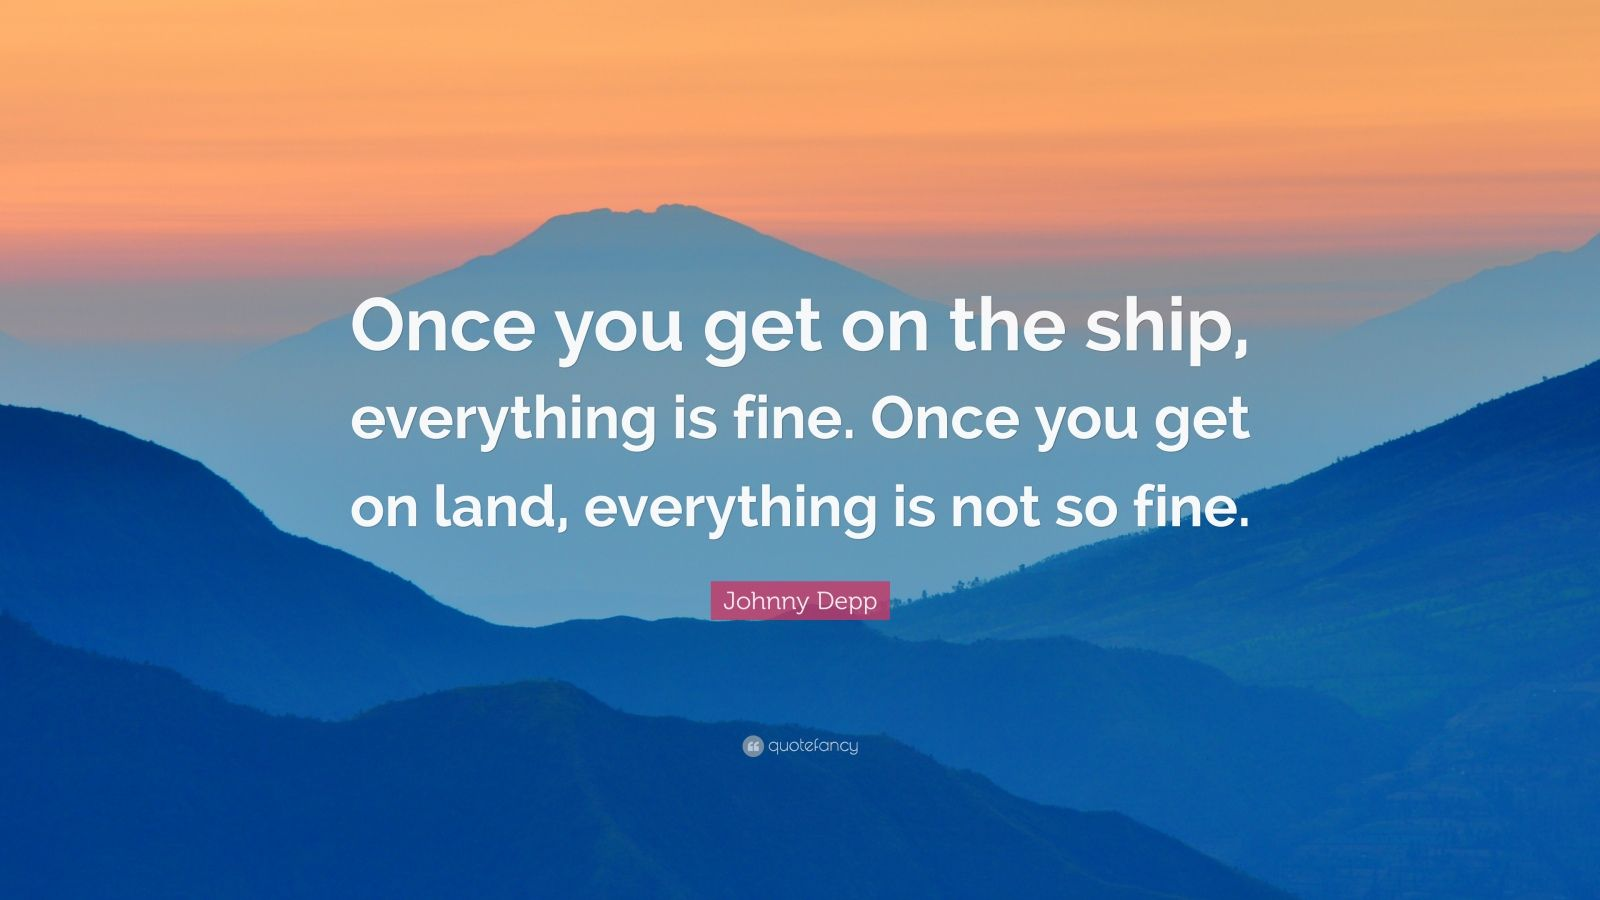 """Johnny Depp Quote: """"Once you get on the ship, everything is fine. Once you get on land, everything is not so fine."""""""